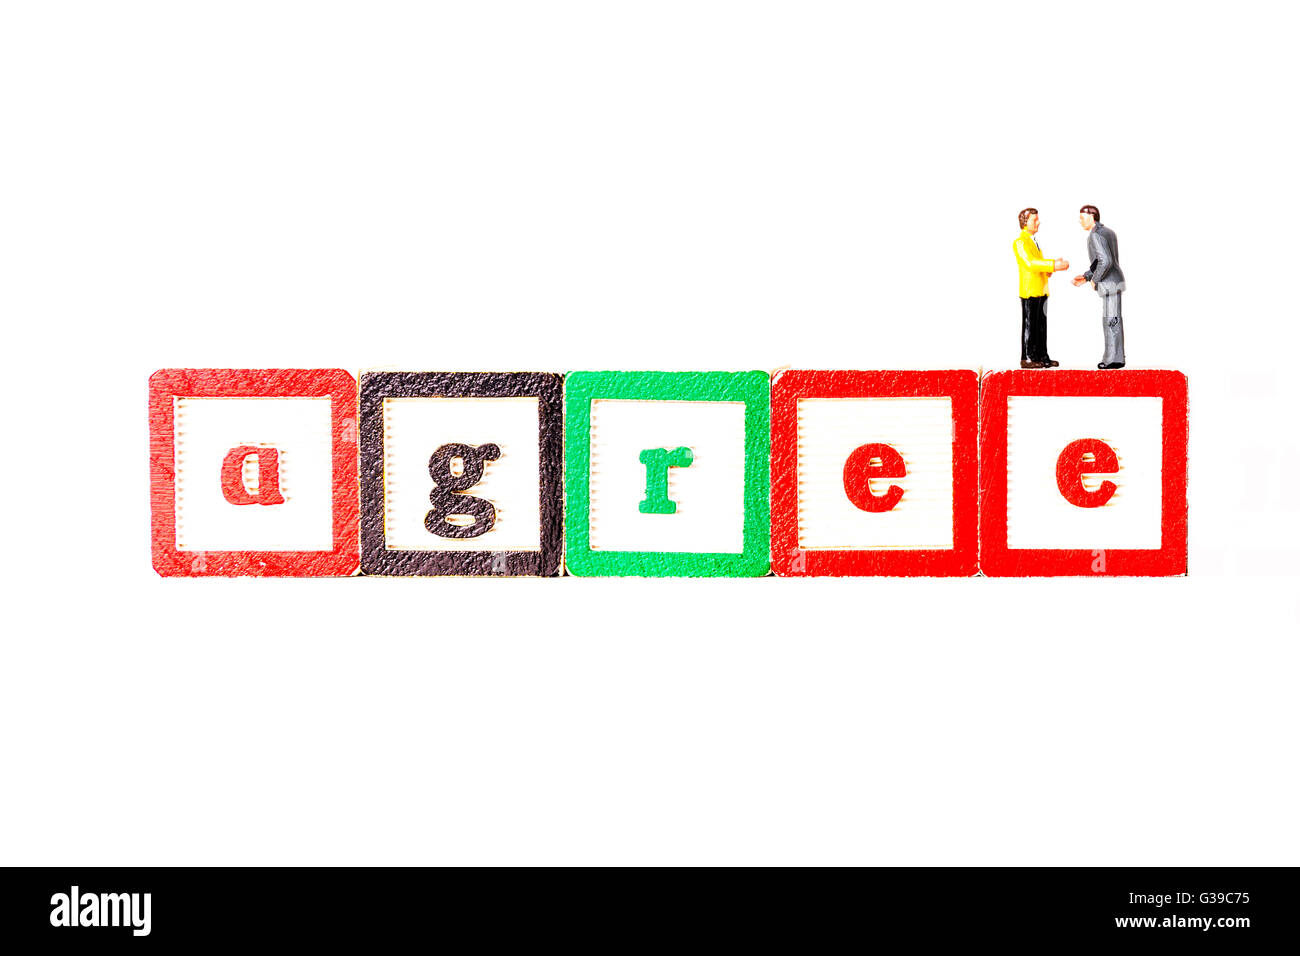 Agree agreement deal business businessmen men agreeing shaking hands handshake Cutout cut out white background isolated Stock Photo